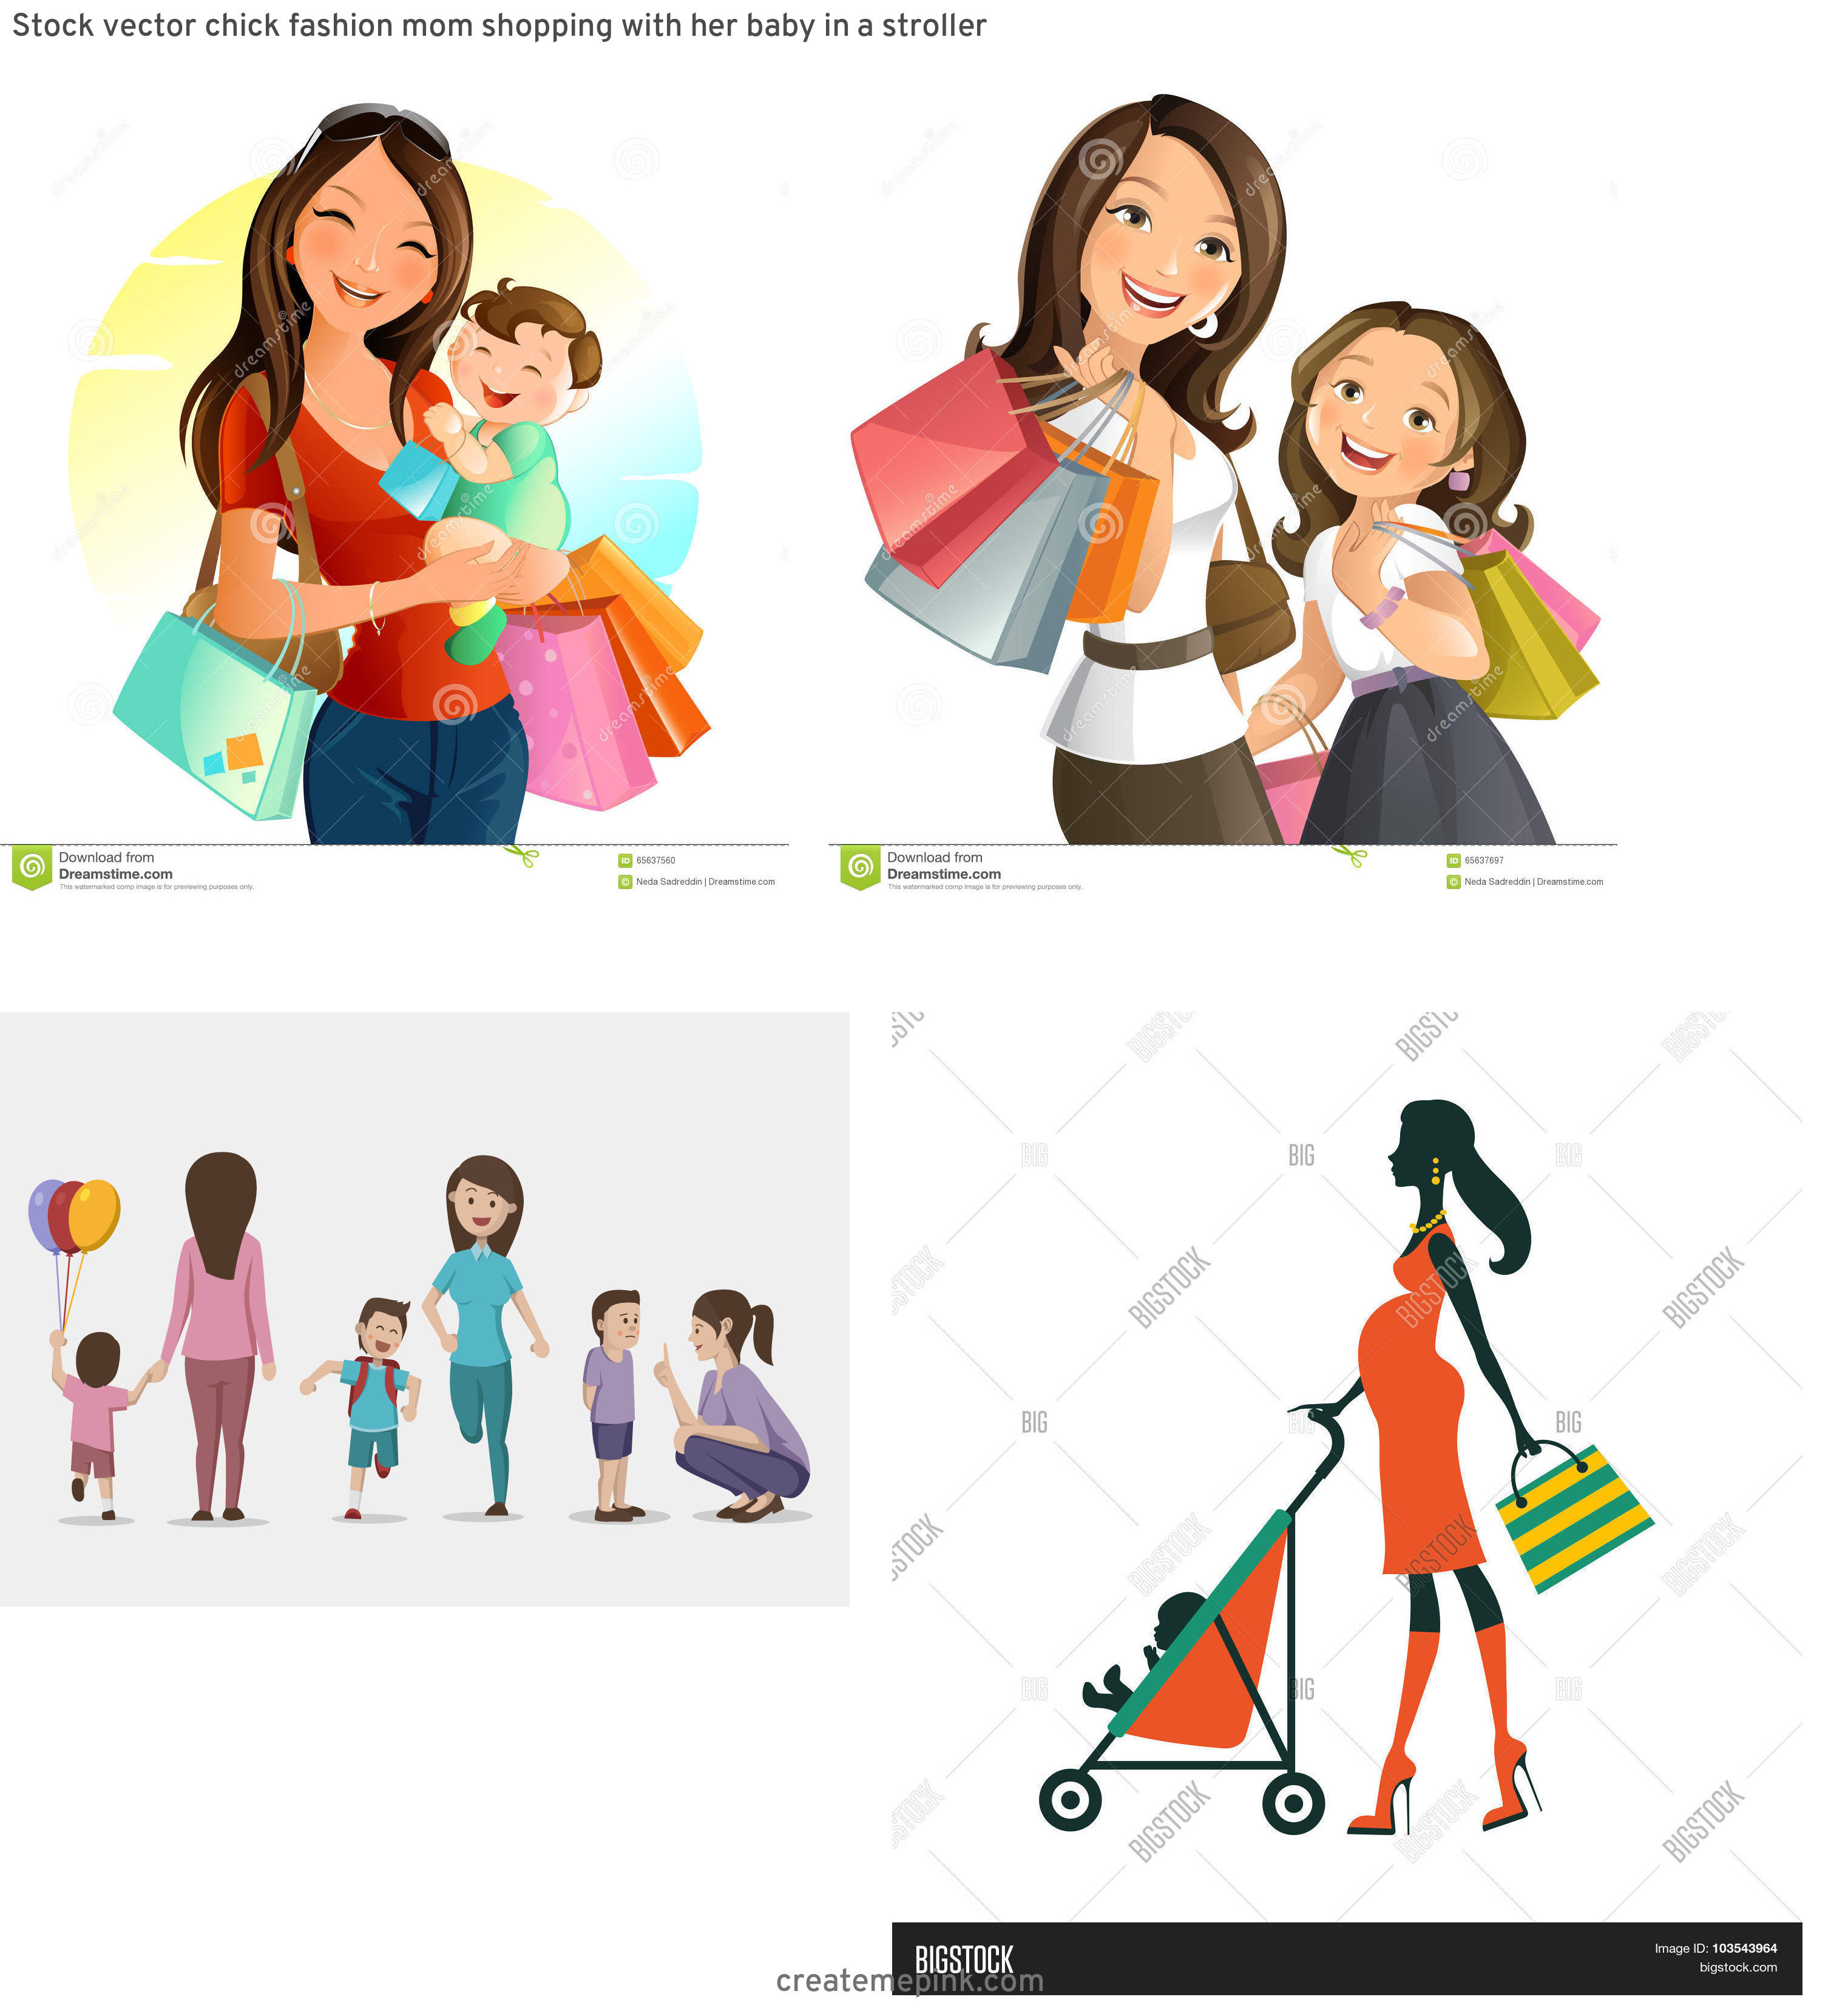 Shopping Vector Of Mom: Stock Vector Chick Fashion Mom Shopping With Her Baby In A Stroller